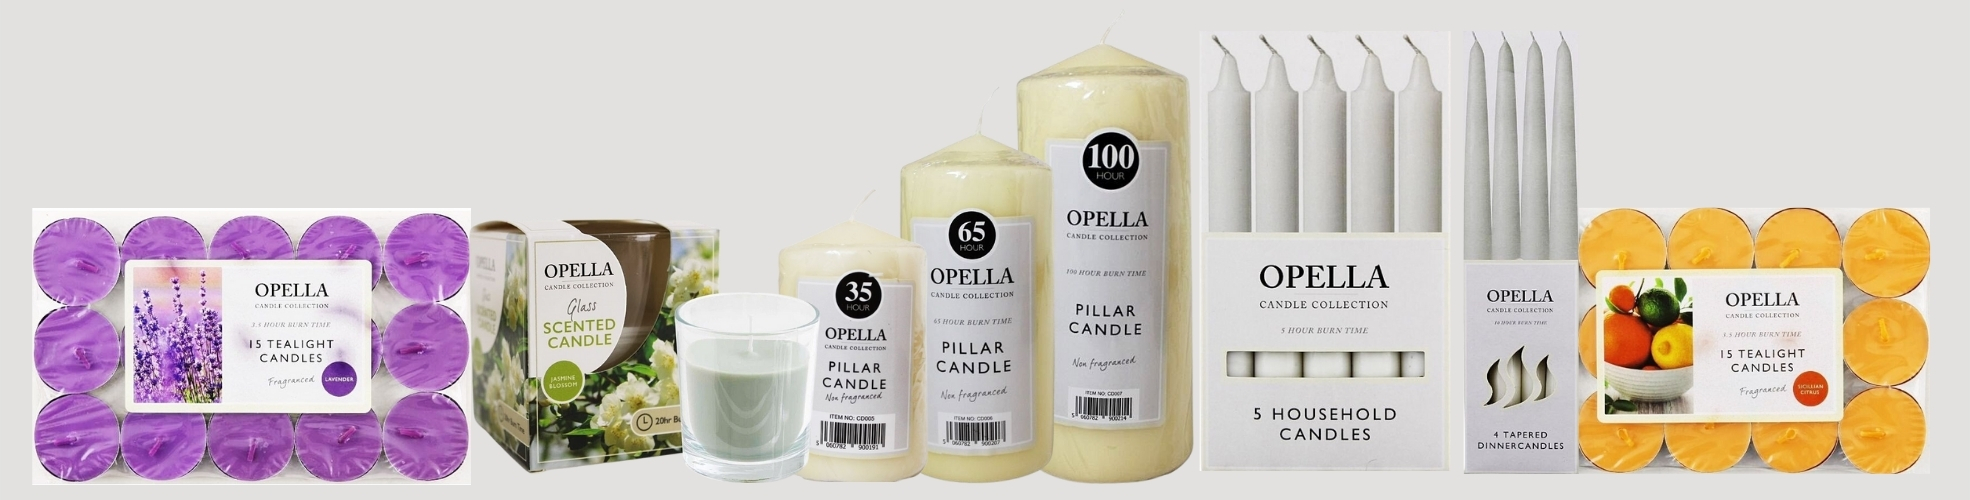 Brose our range of wholesale candles available in a wide range of variety; Opella Candles, Birthday Candles, Candle Holders, Candle Snuffer, Dinner Candles, Jar Candles, Pillar Candles, Novelty Candles, Magic Spell Candles, Scented Candles, Tealight Candles and many more